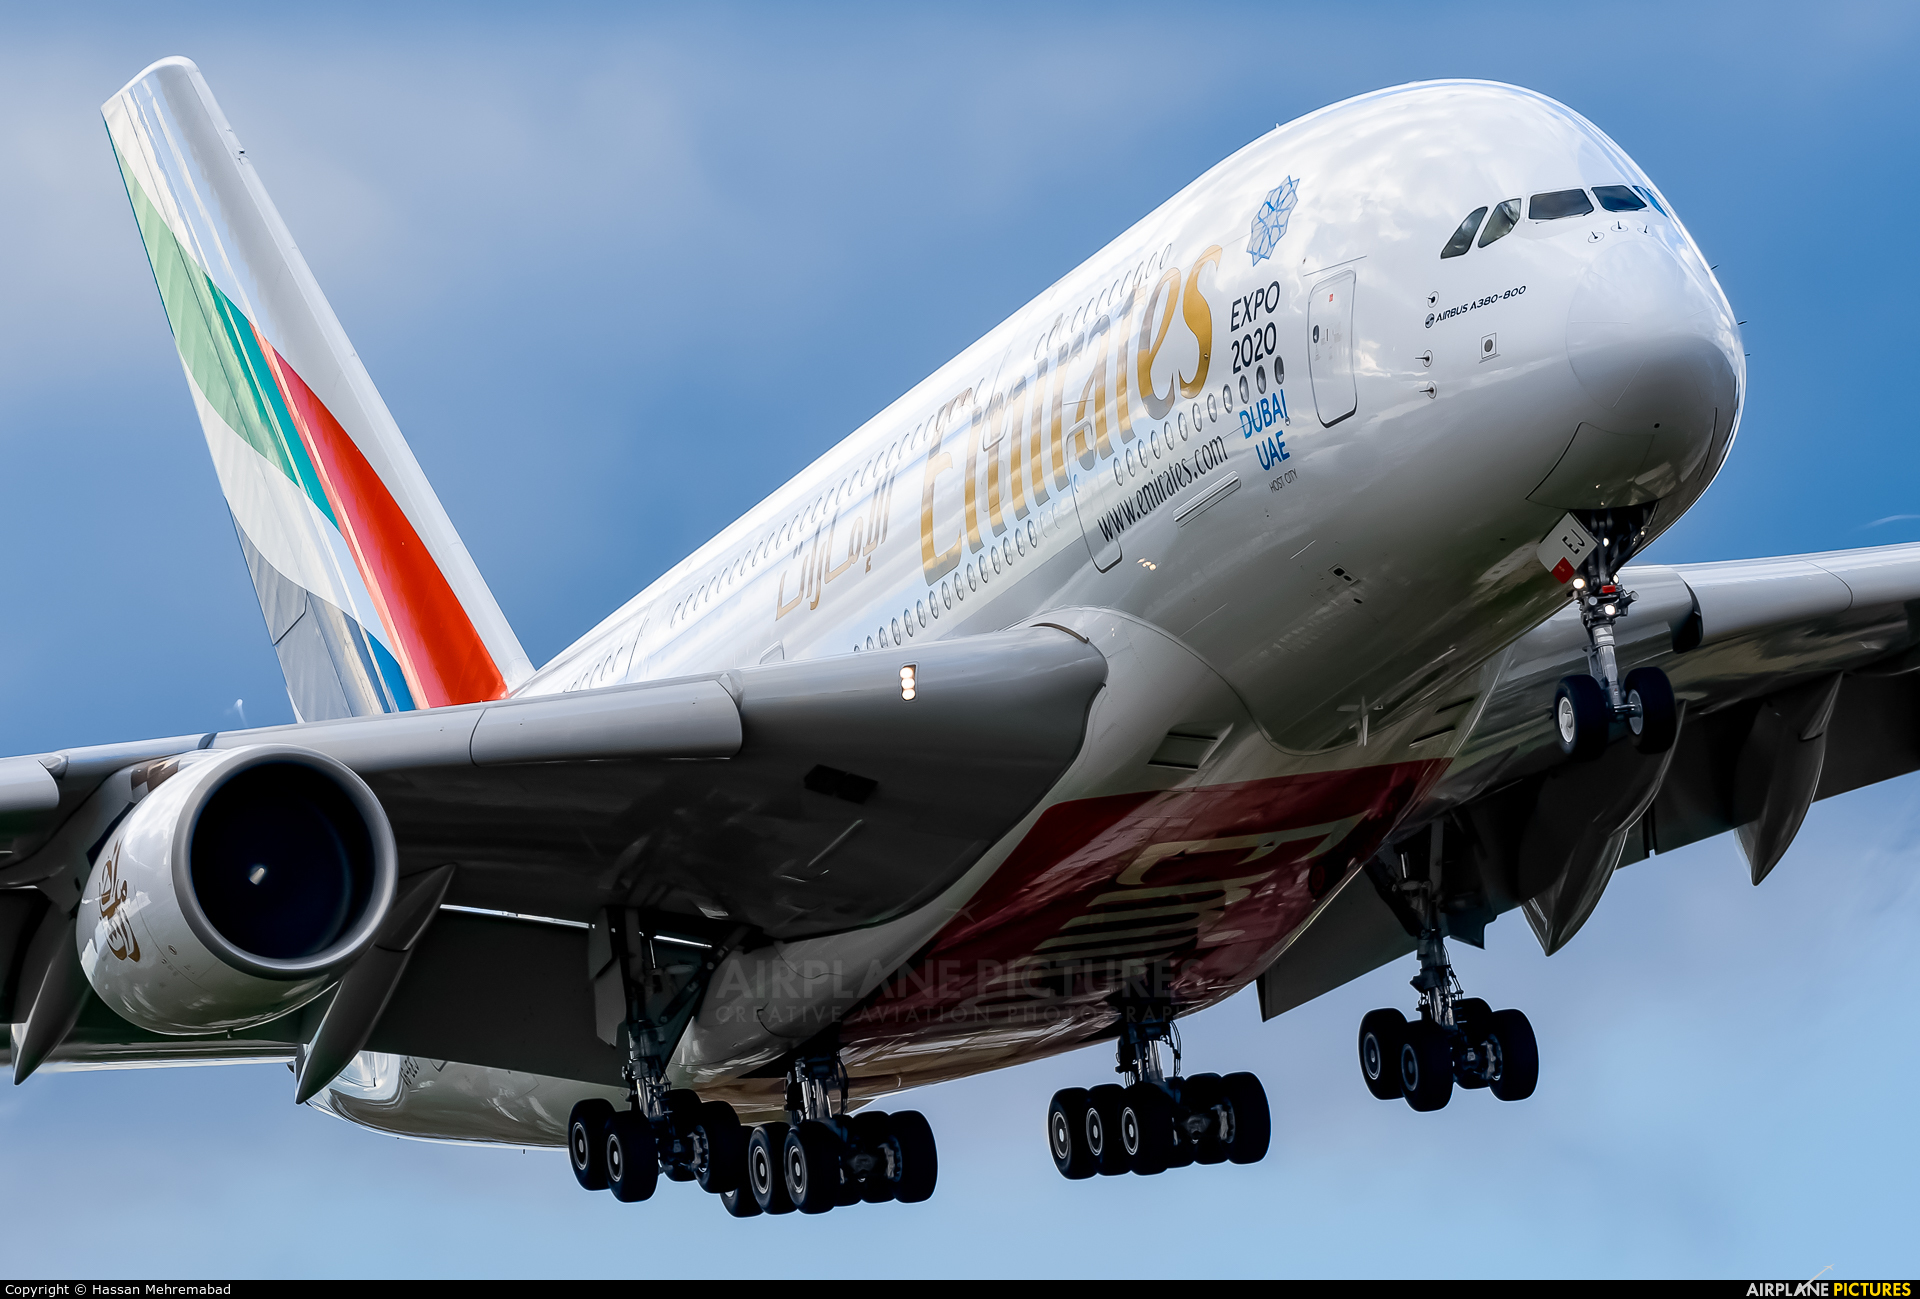 Emirates Airlines A6-EEJ aircraft at London - Heathrow